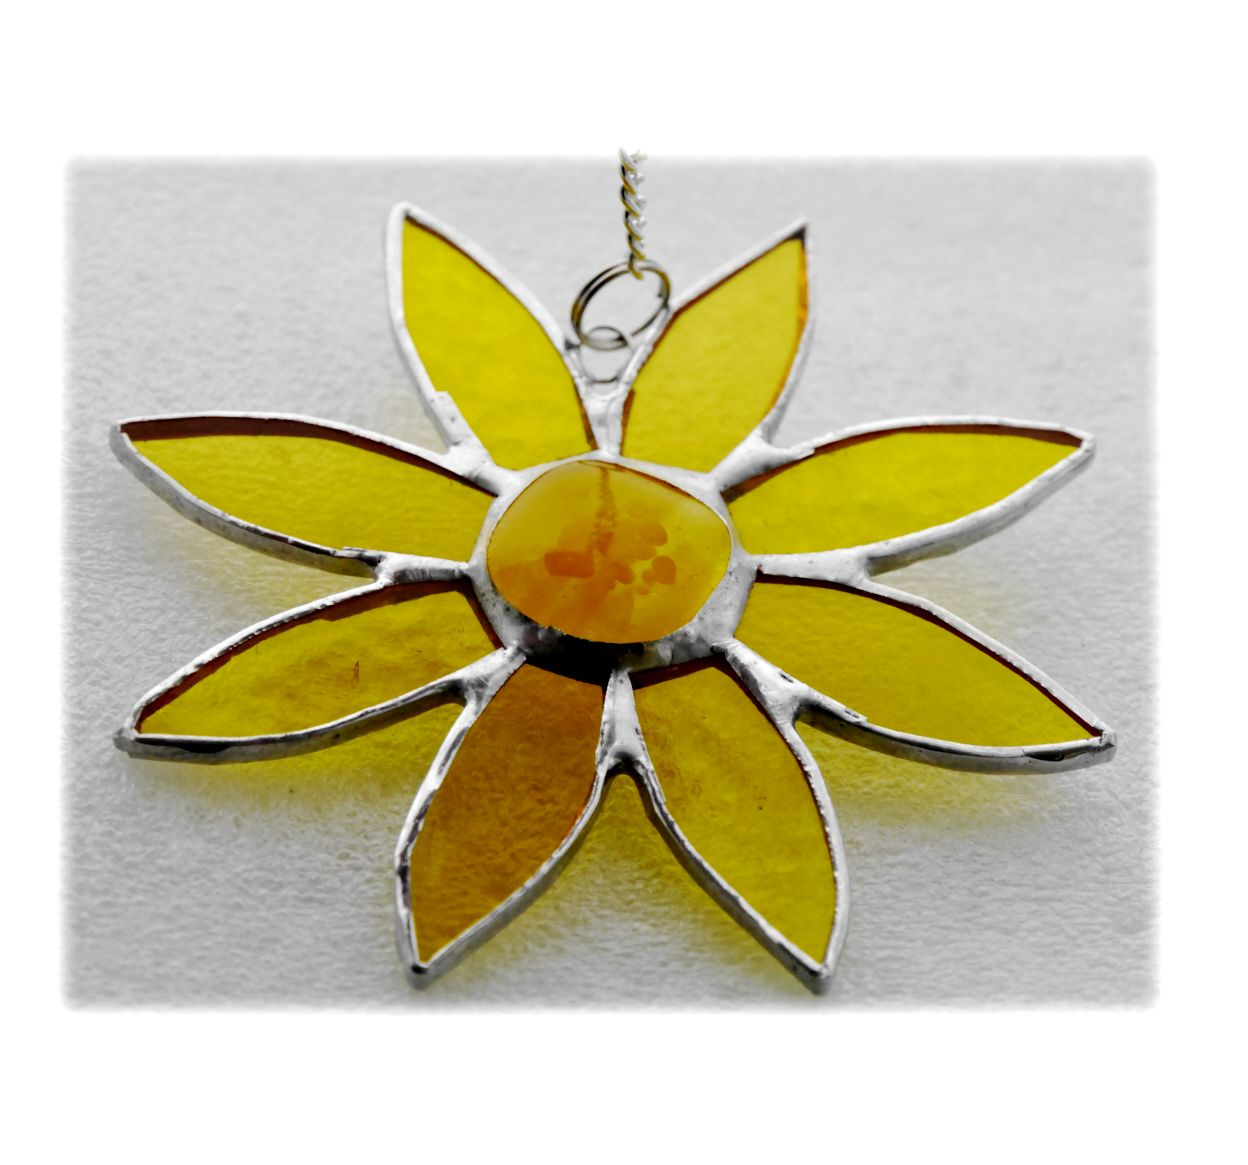 Sunflower 045 #1812 FREE 10.00